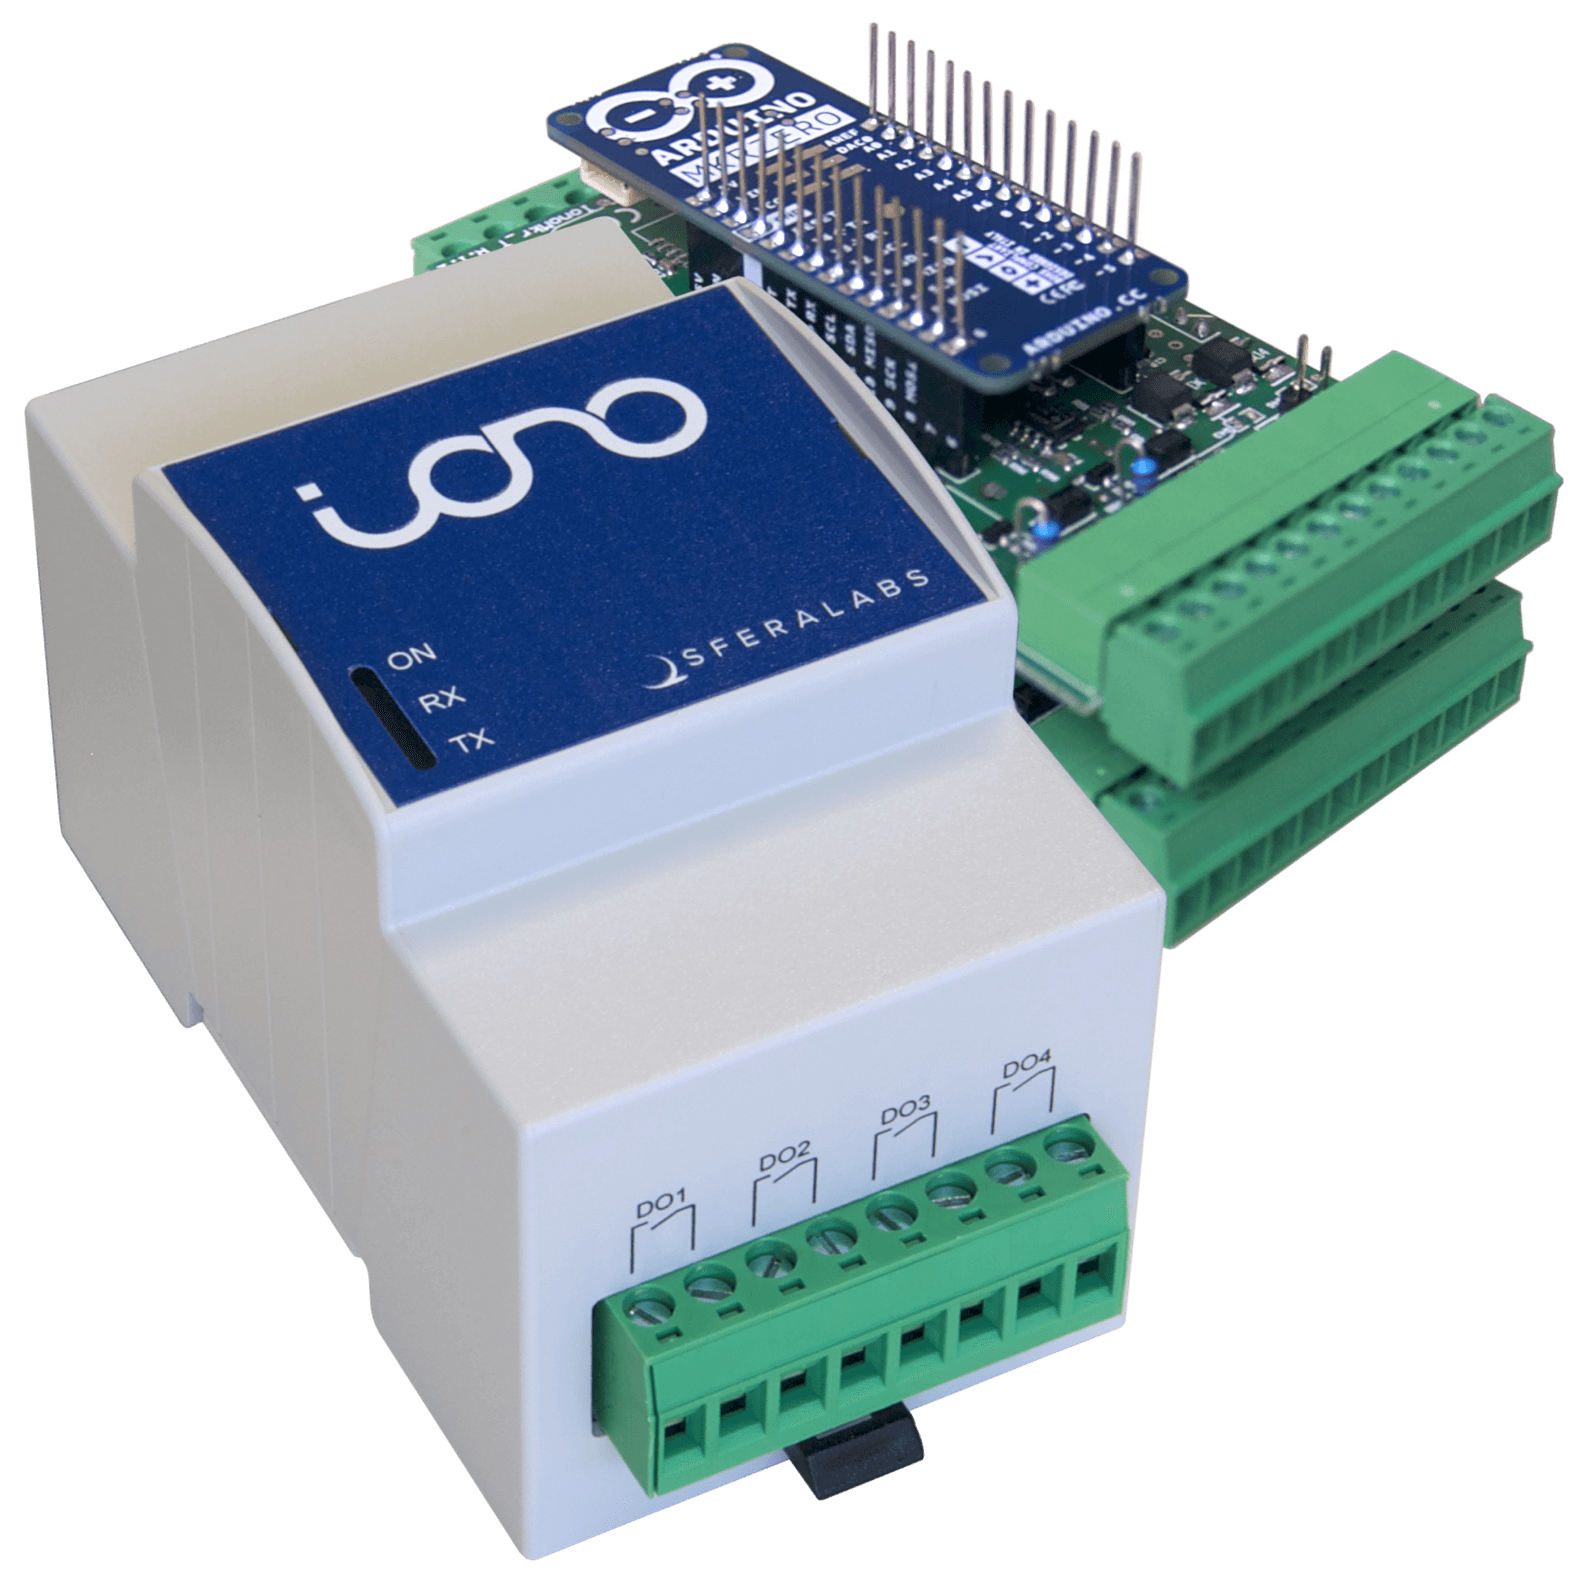 Iono Mkr Sfera Labs Arduino Relay Wiring Further Board As Well 2 Industrial Plc